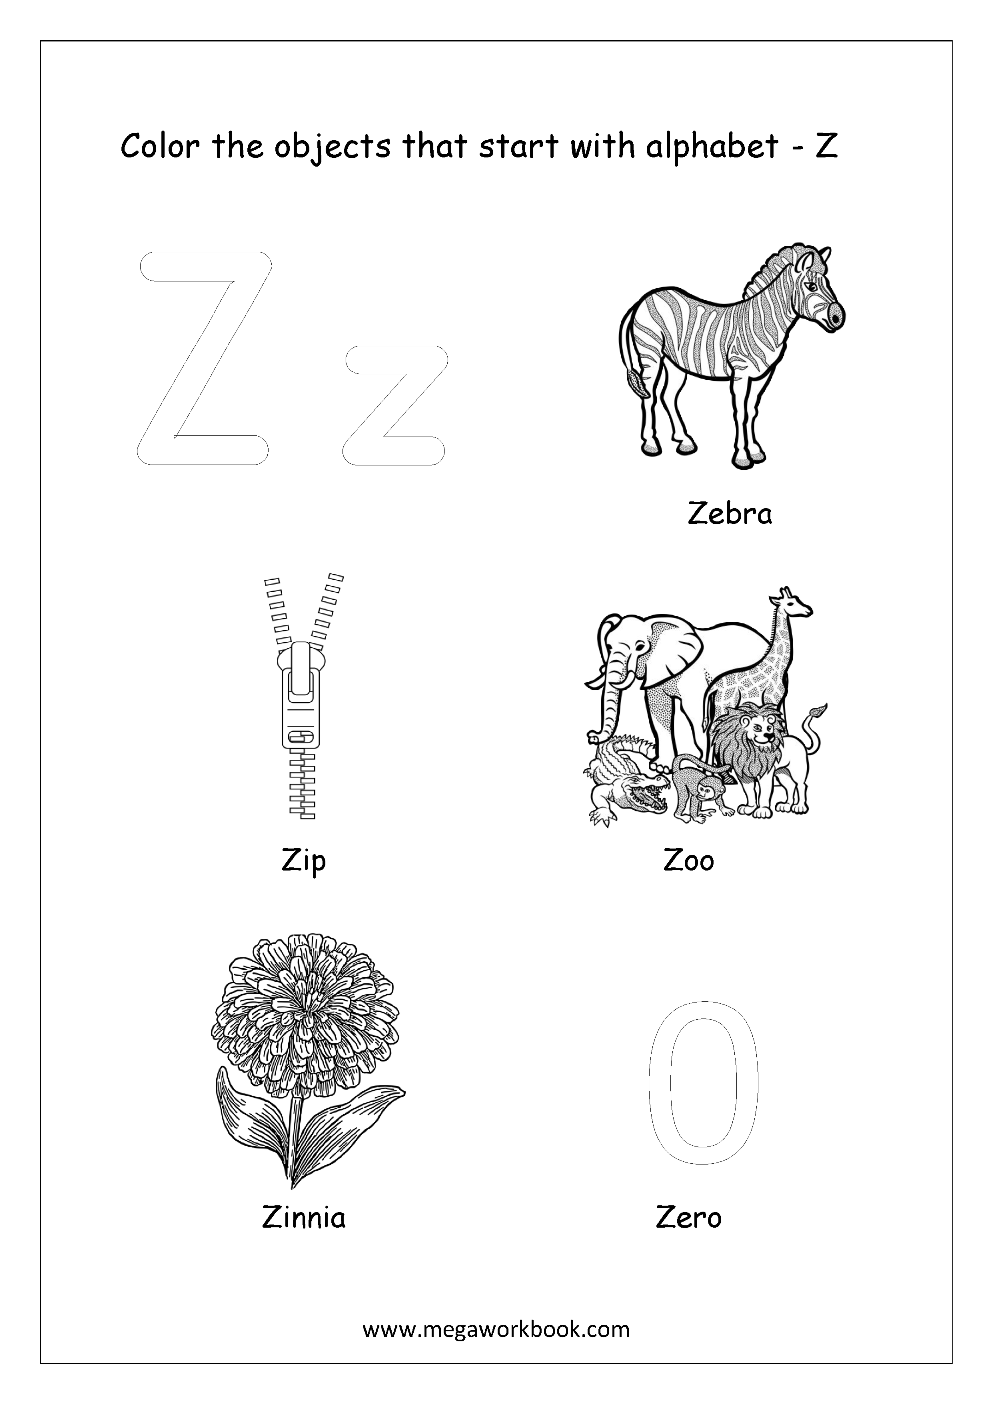 letters that start with z alphabet picture coloring pages things that start with 23394 | Color The Objects Starting With Alphabet Z